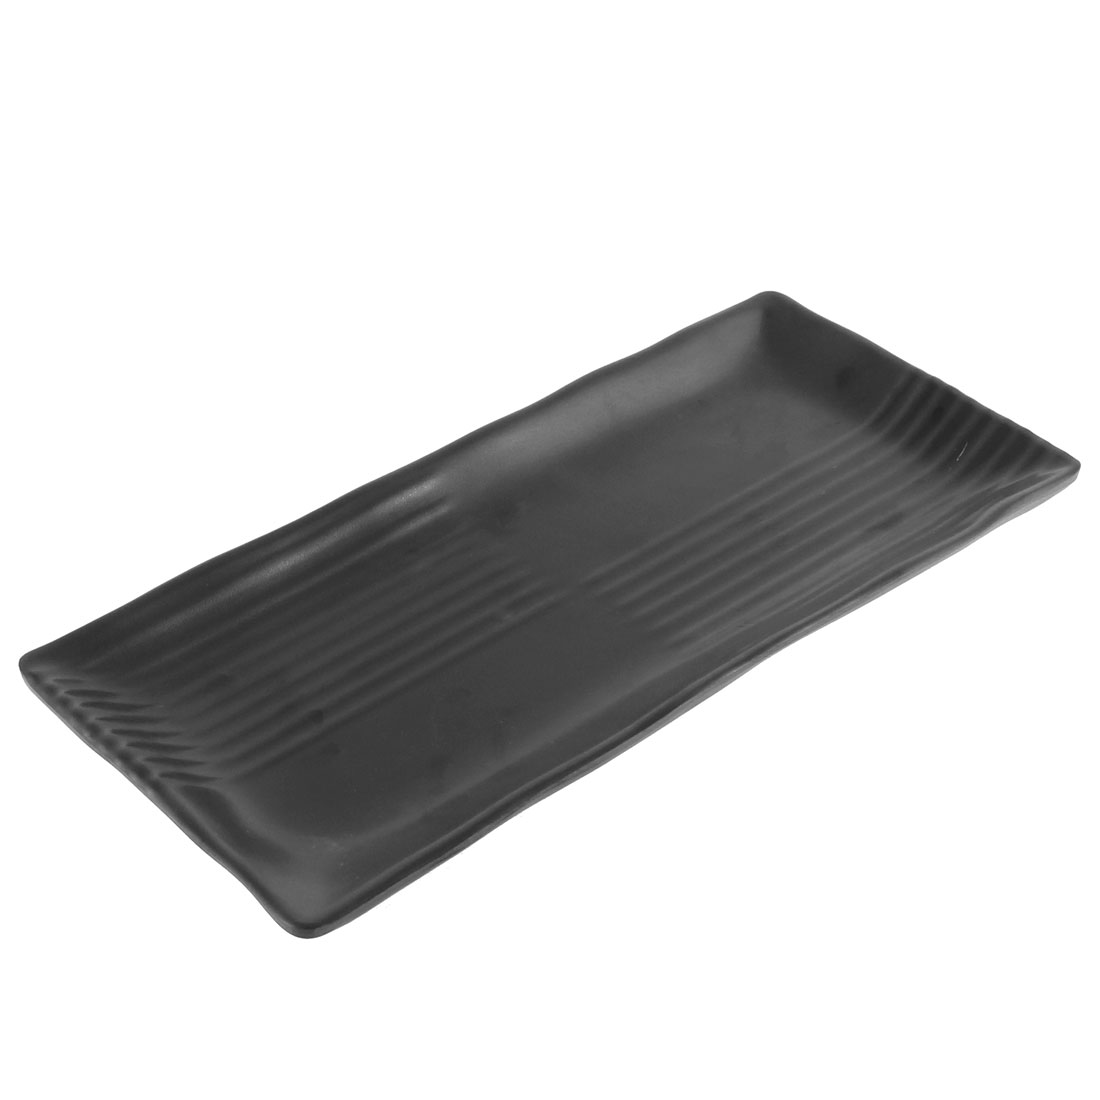 "Restaurant Dinnerware Banquet Rectangle Shape Sushi Dish Plate 13"" Length"